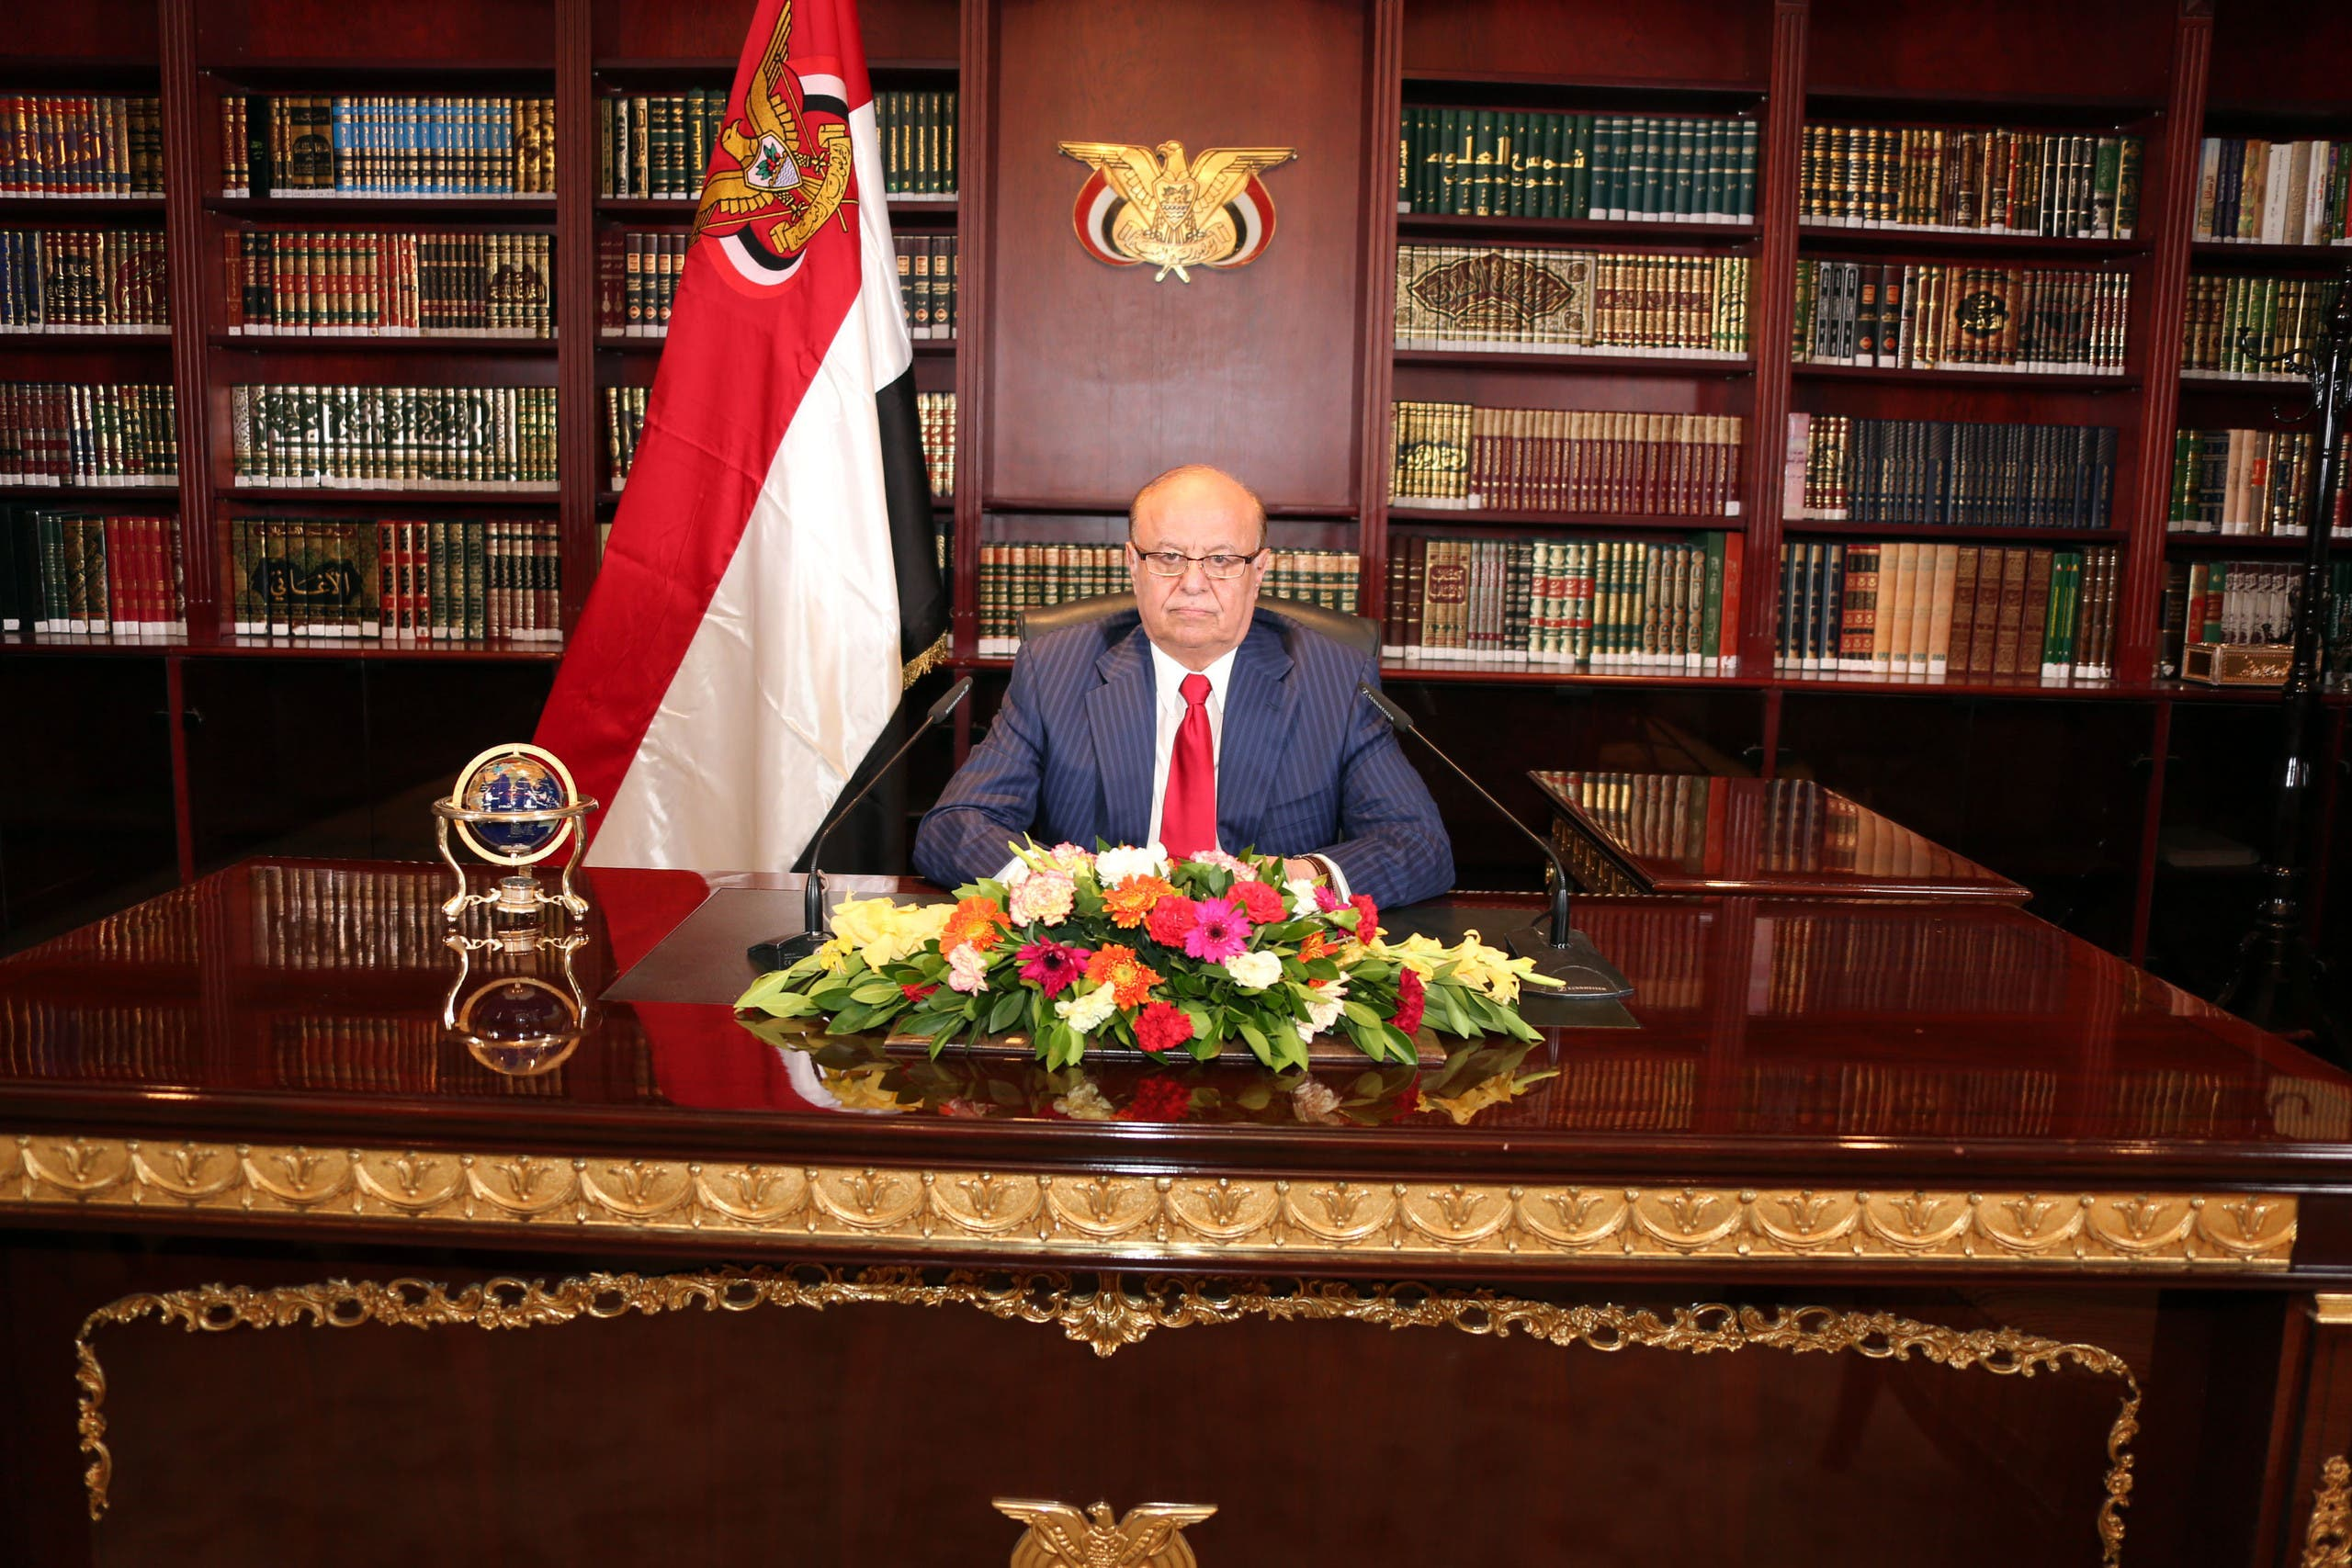 In this photo provided by Yemen's Presidency Office, Yemeni President Abed Rabbo Mansour Hadi delivers a speech in his office at Presidential Palace on the occasion of the 52nd anniversary of North Yemen's the September 26, 1962 revolution in Sanaa, Yemen, Thursday, Sept. 25, 2014. (AP Photo/Yemen's Presidency Office)